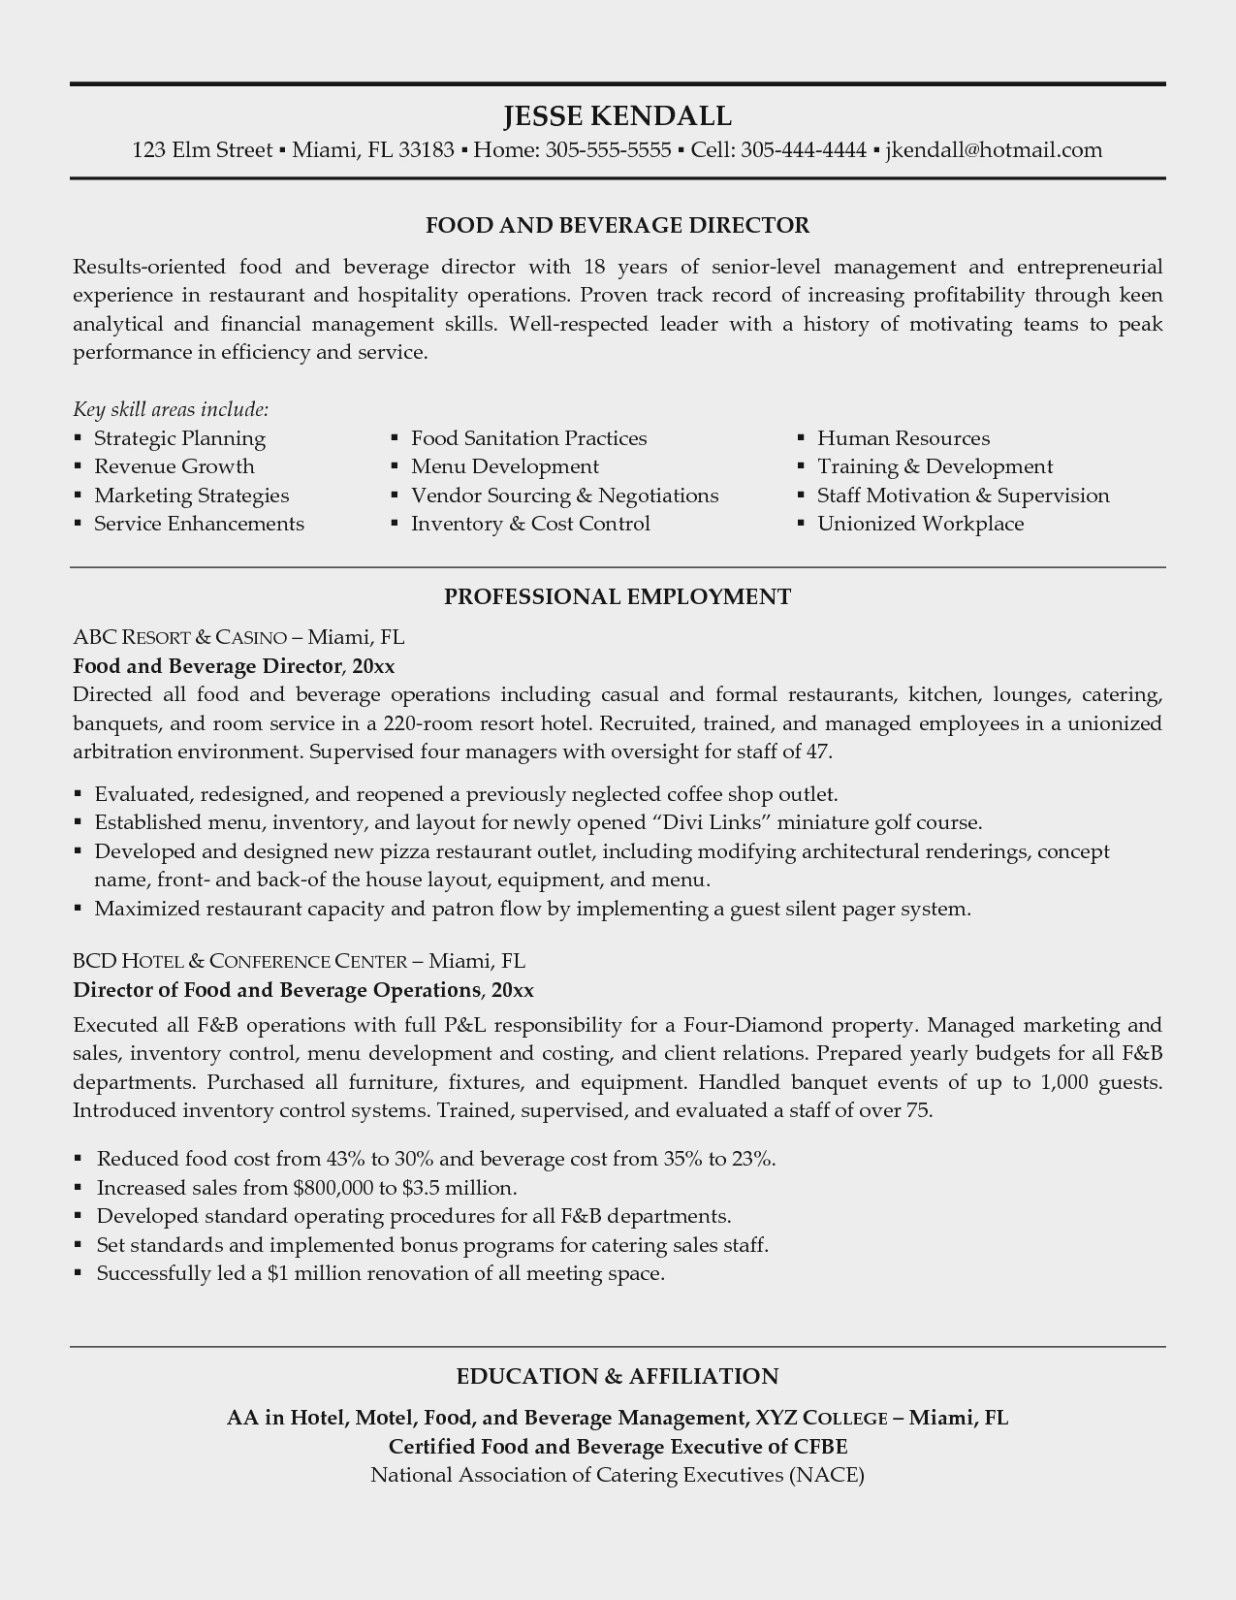 Food and Beverage Manager Resume Uptodate why is Food